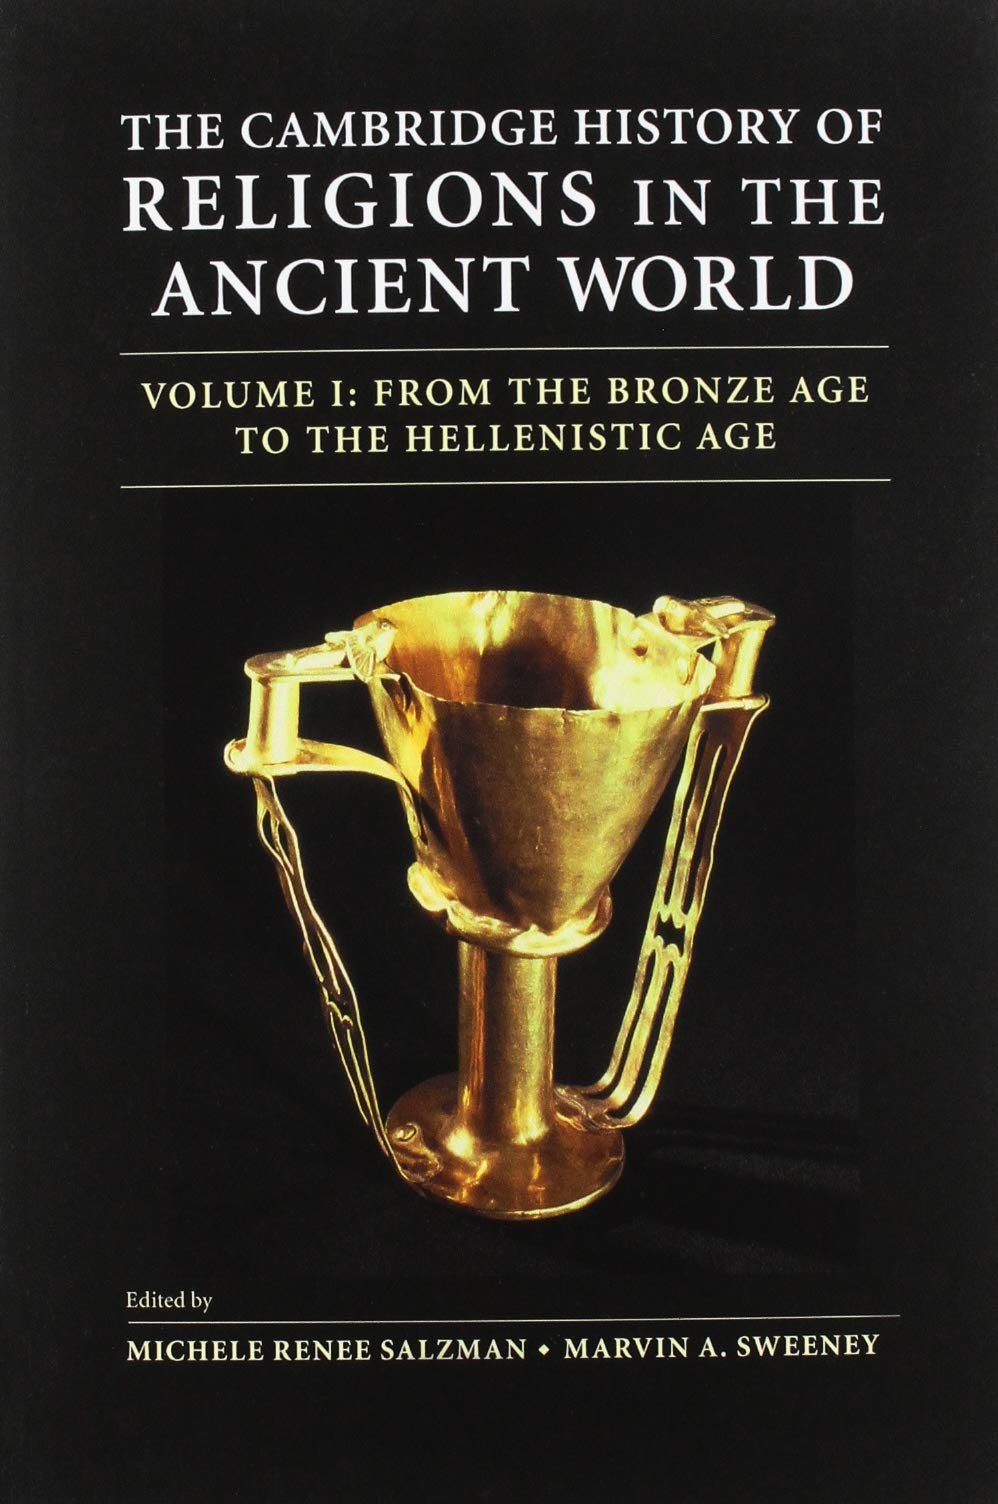 The Cambridge History of Religions in the Ancient World. 9781108703093